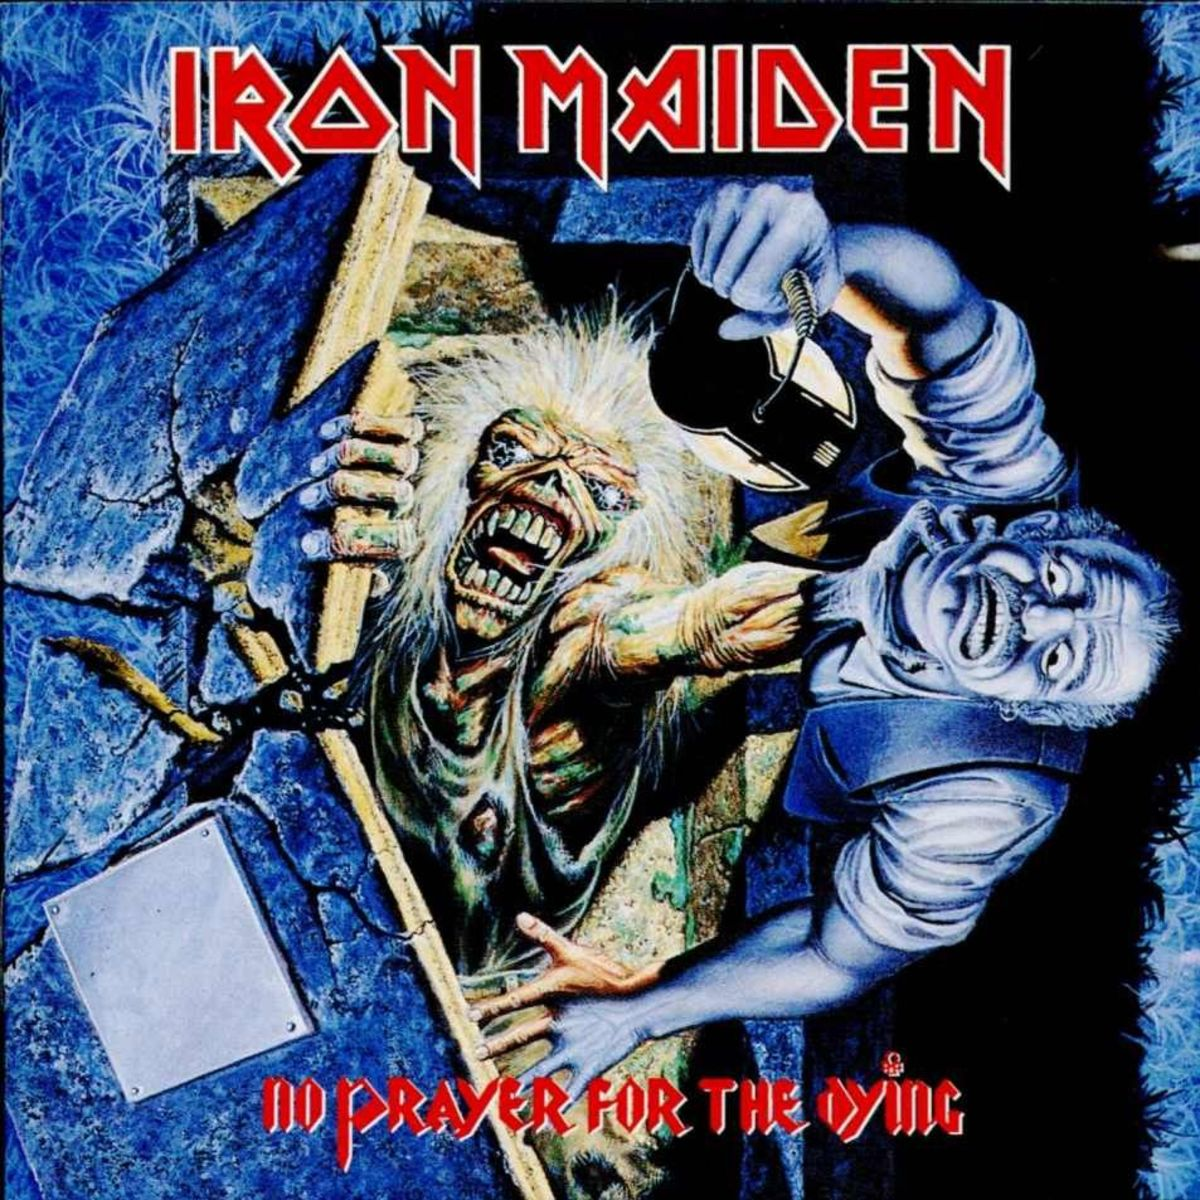 "Iron Maiden ""No Prayer for the Dying"" Rpic Records E 46905 12"" LP Vinyl Record (1990)  Album Cover Art by Derek Riggs"